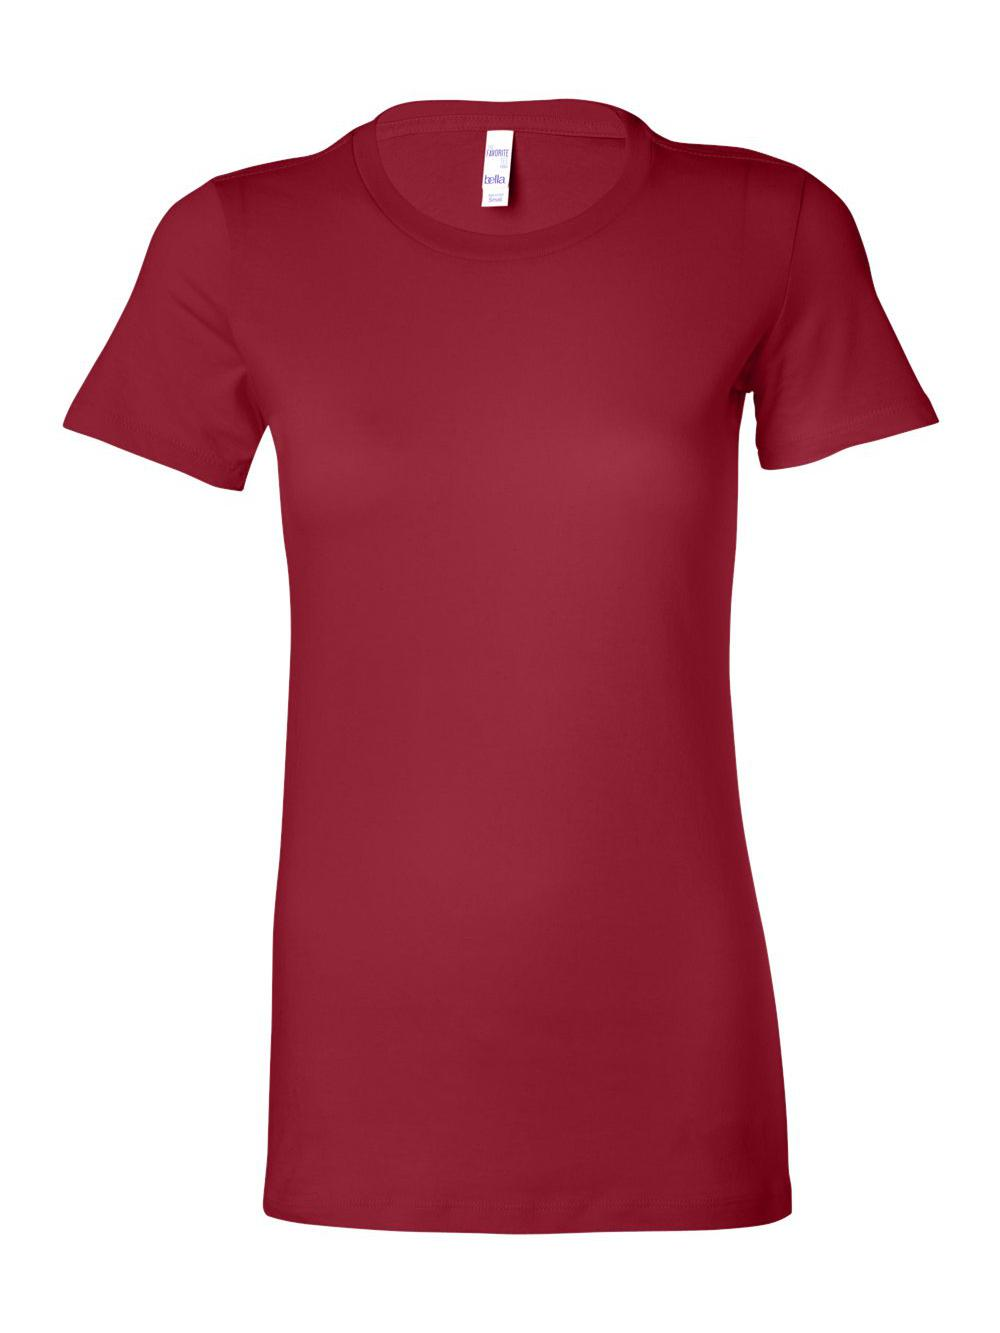 Bella-Canvas-Women-039-s-The-Favorite-Tee-6004 thumbnail 24